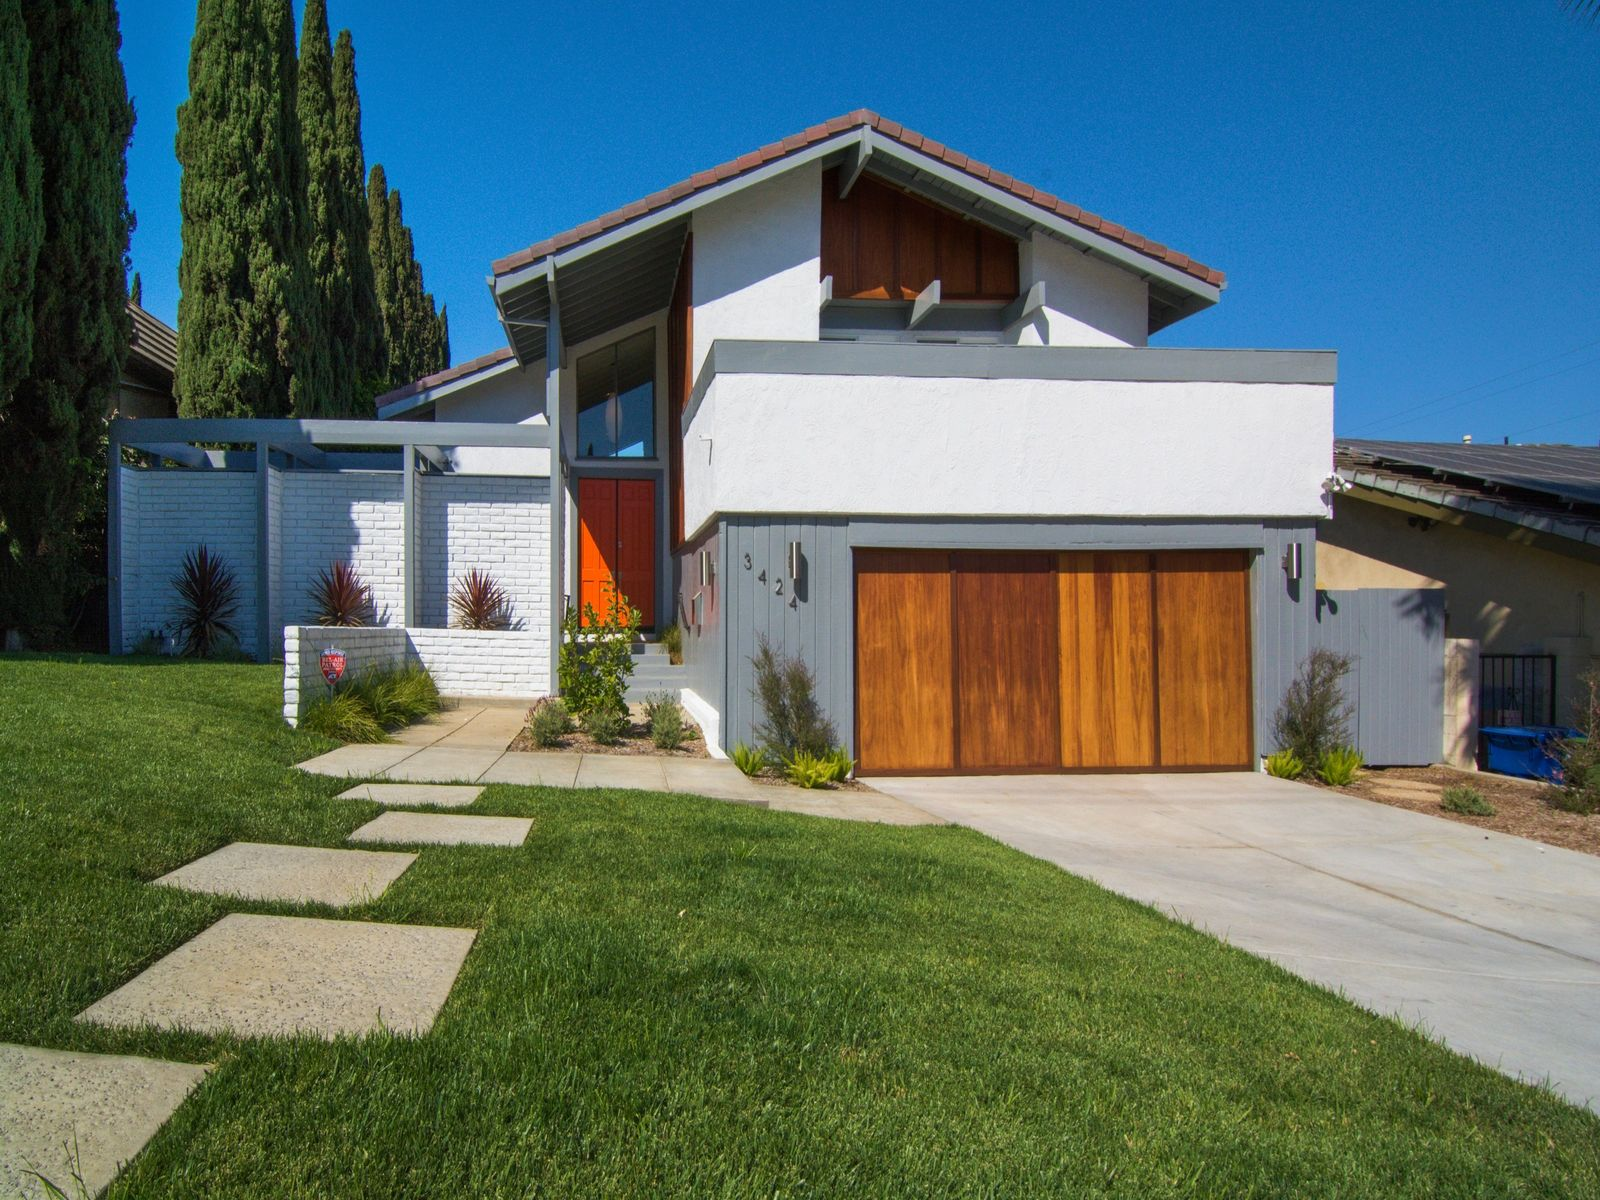 3424 Huxley Street, Los Angeles CA Single Family Home - Los Angeles Real Estate